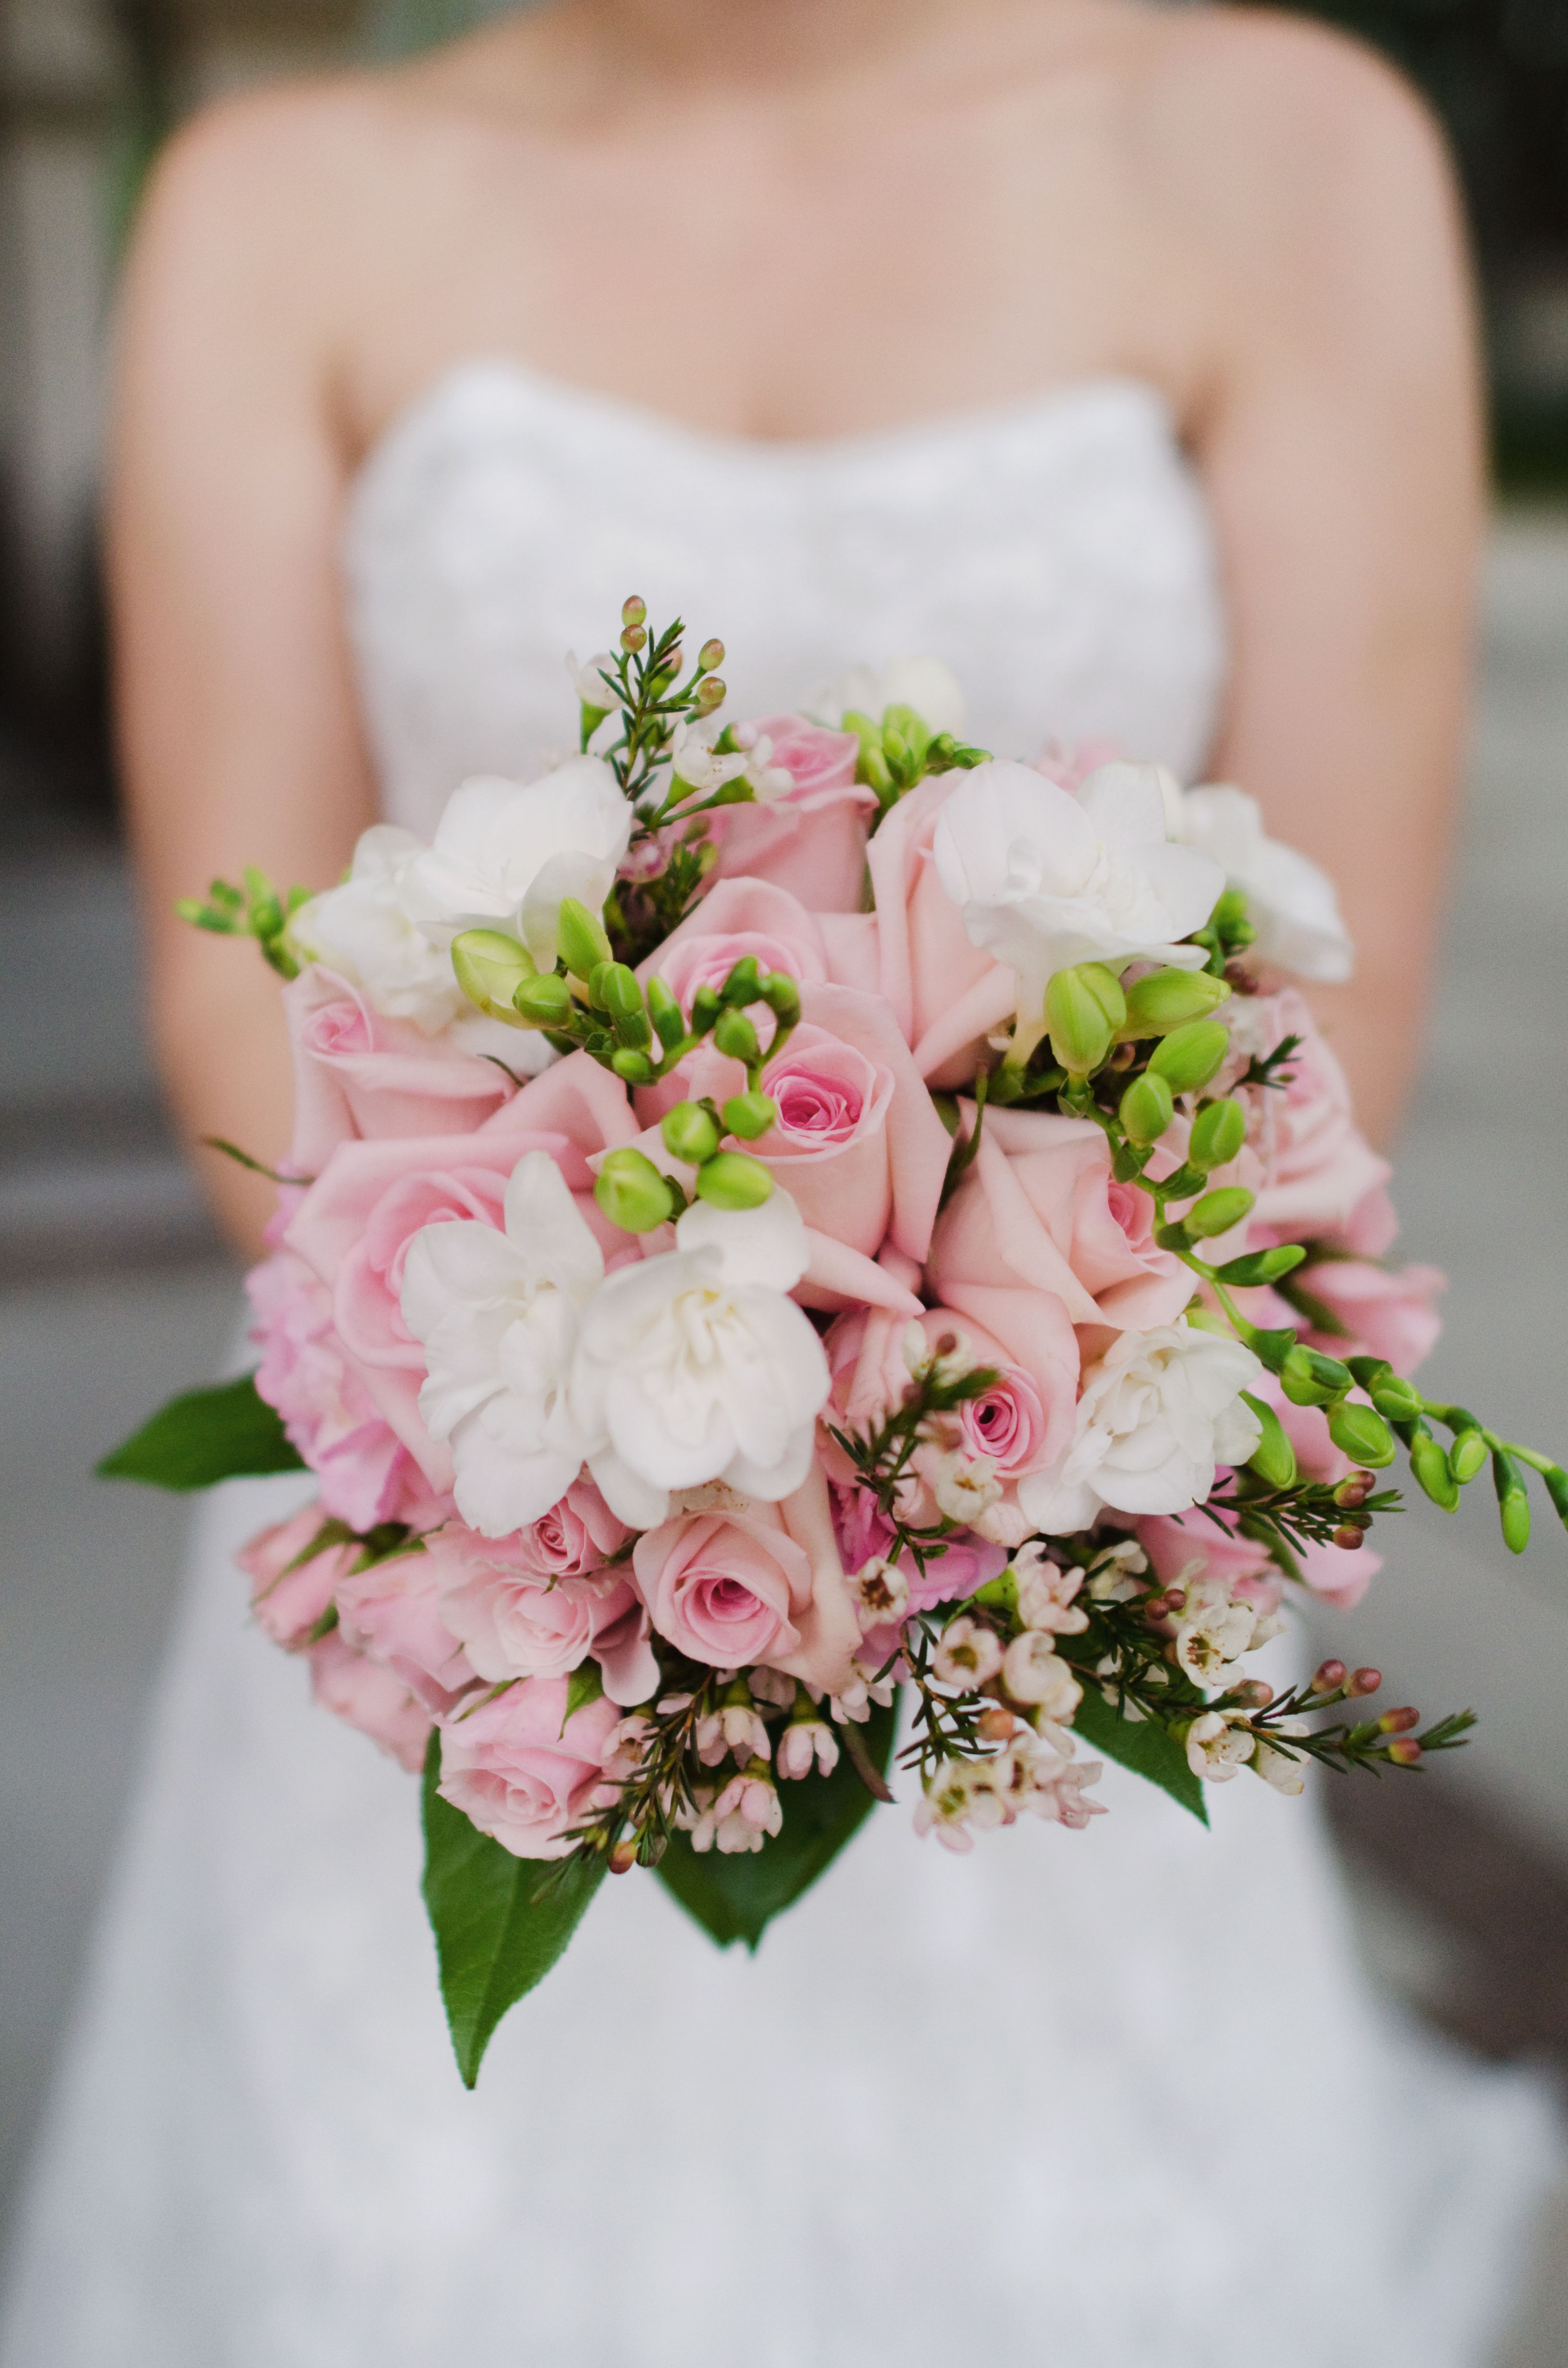 e1b38e4fcd Gorgeous bouquet of pink roses, white freesia, pink wax flower. Heavenly  scented!